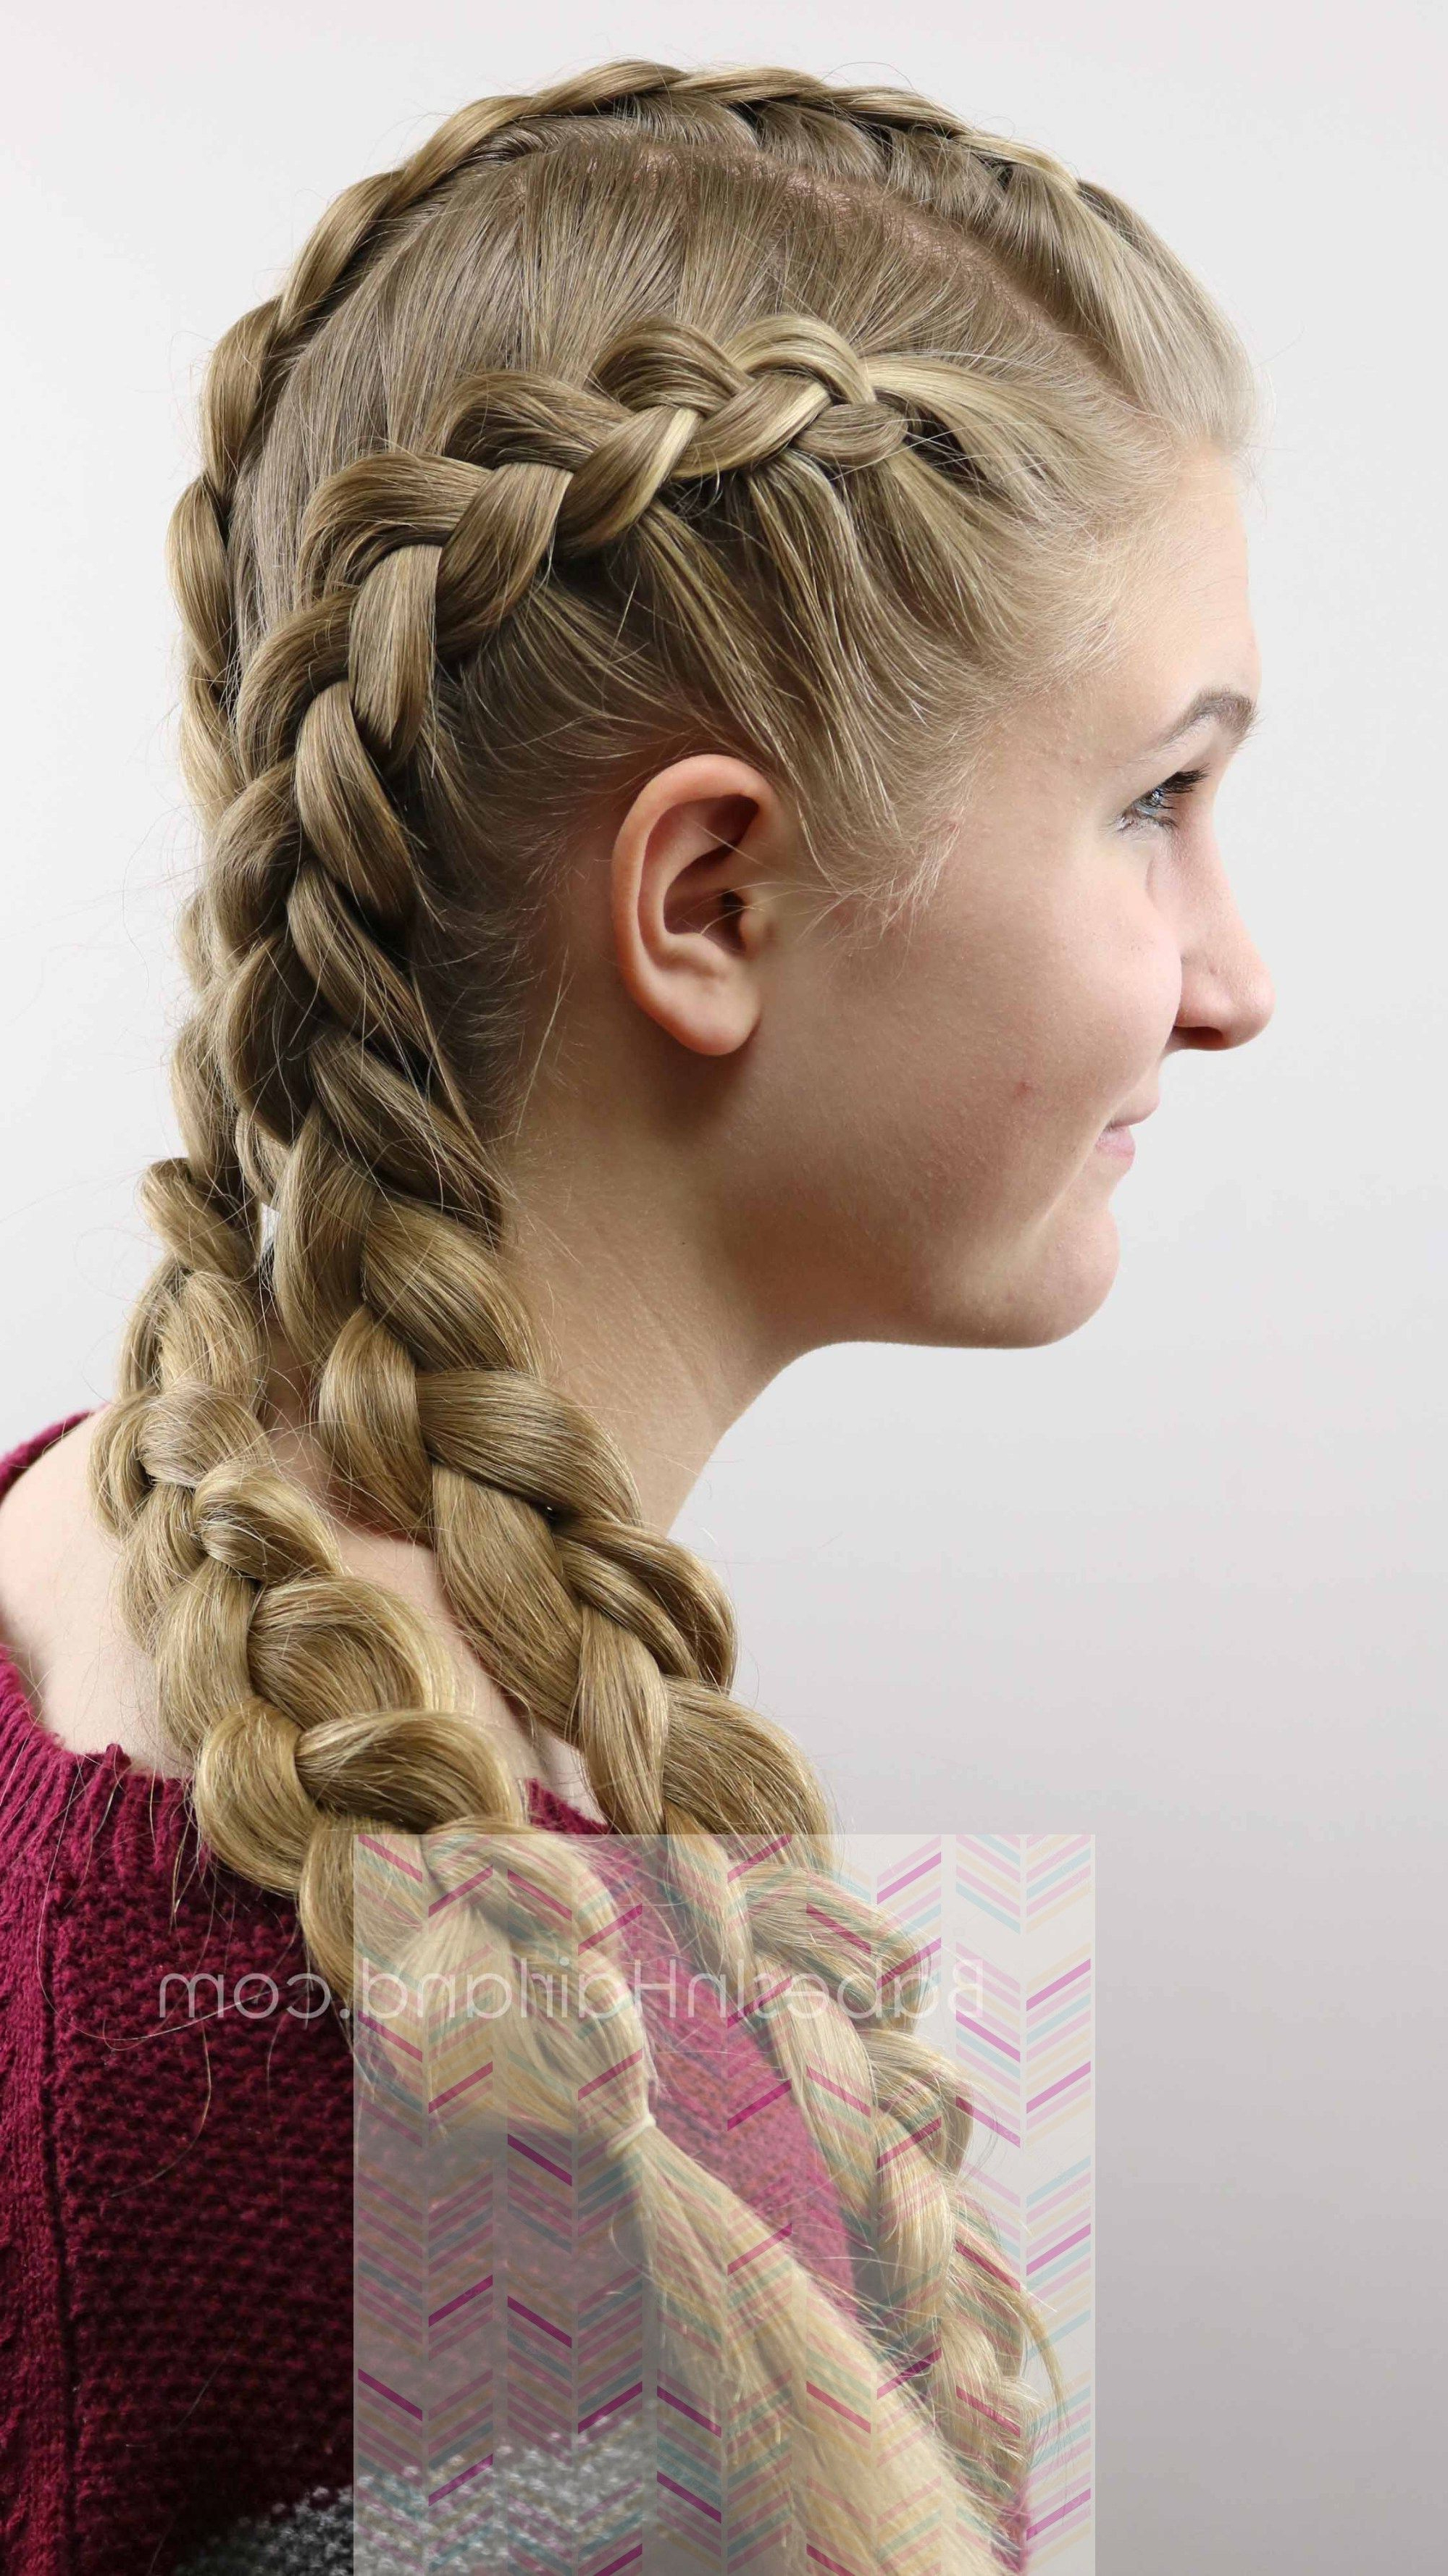 Latest Asymmetrical French Braided Hairstyles Intended For 18+ Fantastic Quick Hairstyles Ideas (Gallery 1 of 20)